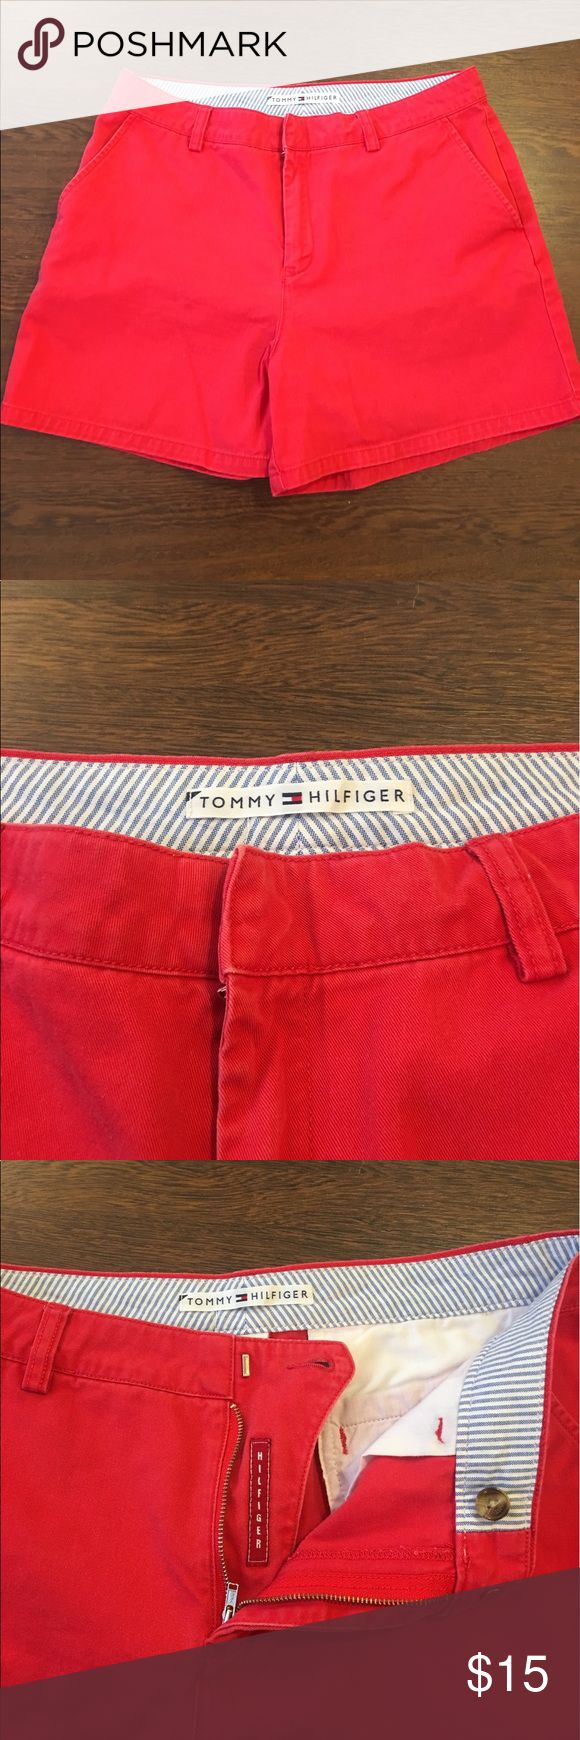 Tommy Hilfiger Red Shorts Women's Size 10 Tommy Hilfiger Red Shorts. Women's Size 10.  100% Cotton. Small Spot On Back. Overall Great Condition. Tommy Hilfiger Shorts